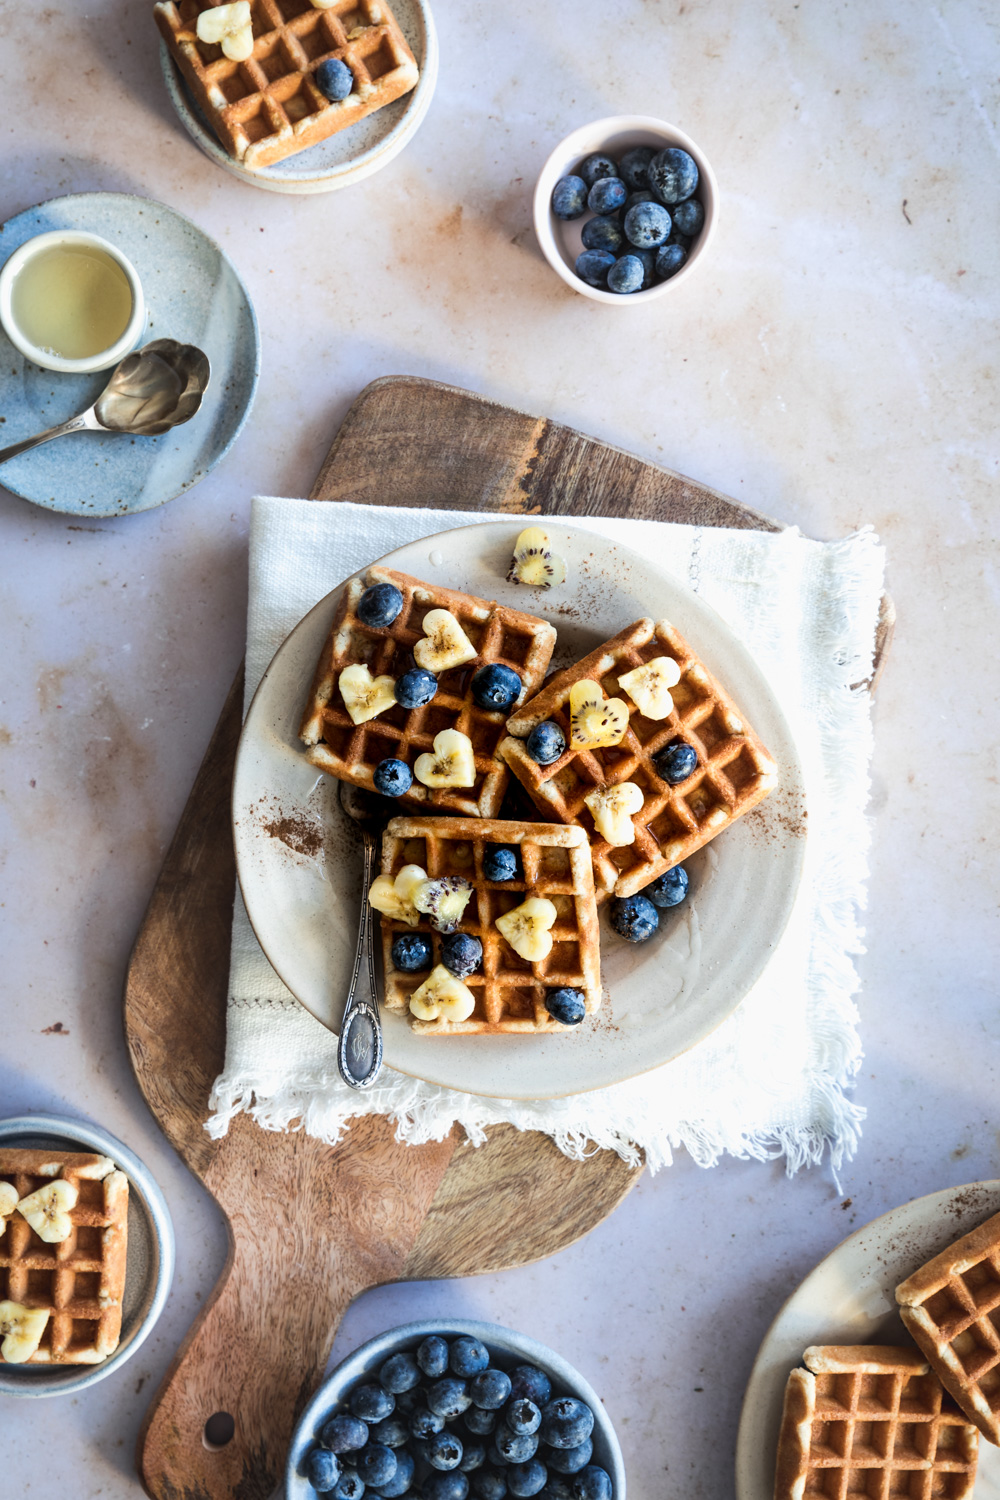 waffles on a plate on a white napkin on a wooden cutting board with a small bowl with syrup